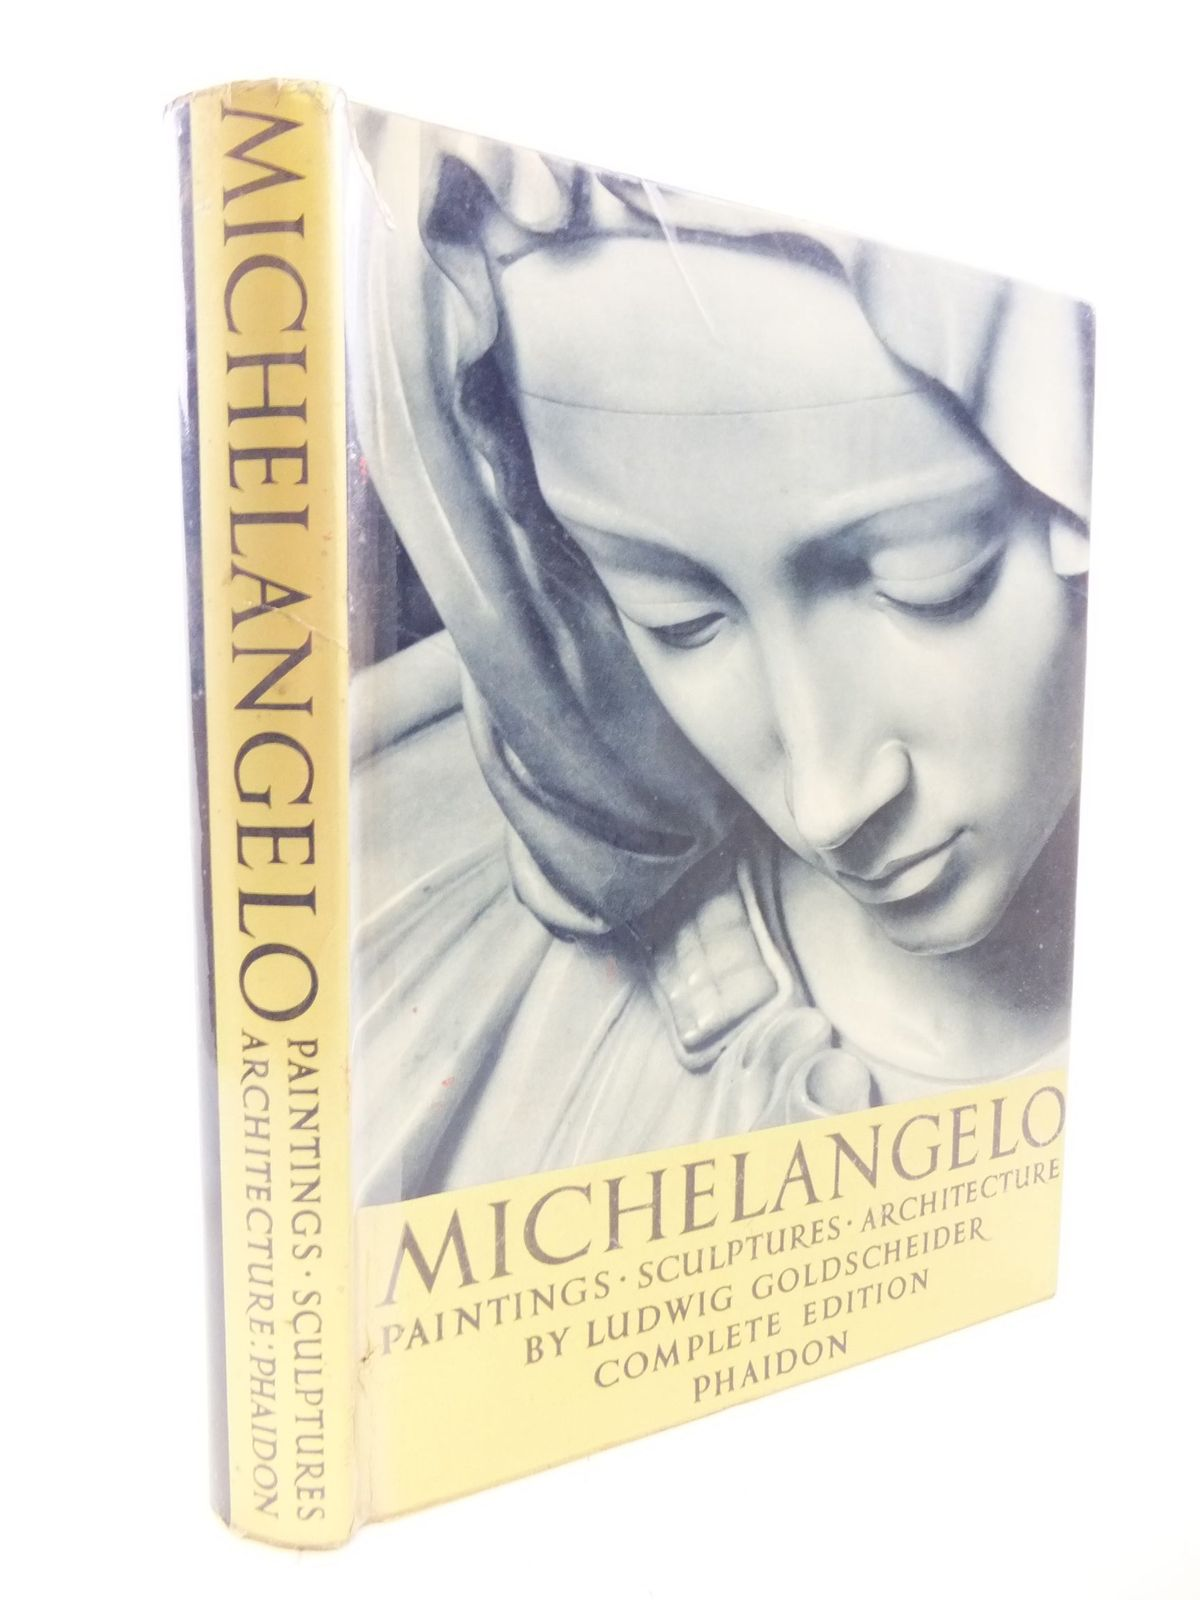 Photo of MICHELANGELO PAINTINGS, SCULPTURES, ARCHITECTURE written by Goldscheider, Ludwig illustrated by Michelangelo, published by Phaidon Press (STOCK CODE: 2114099)  for sale by Stella & Rose's Books